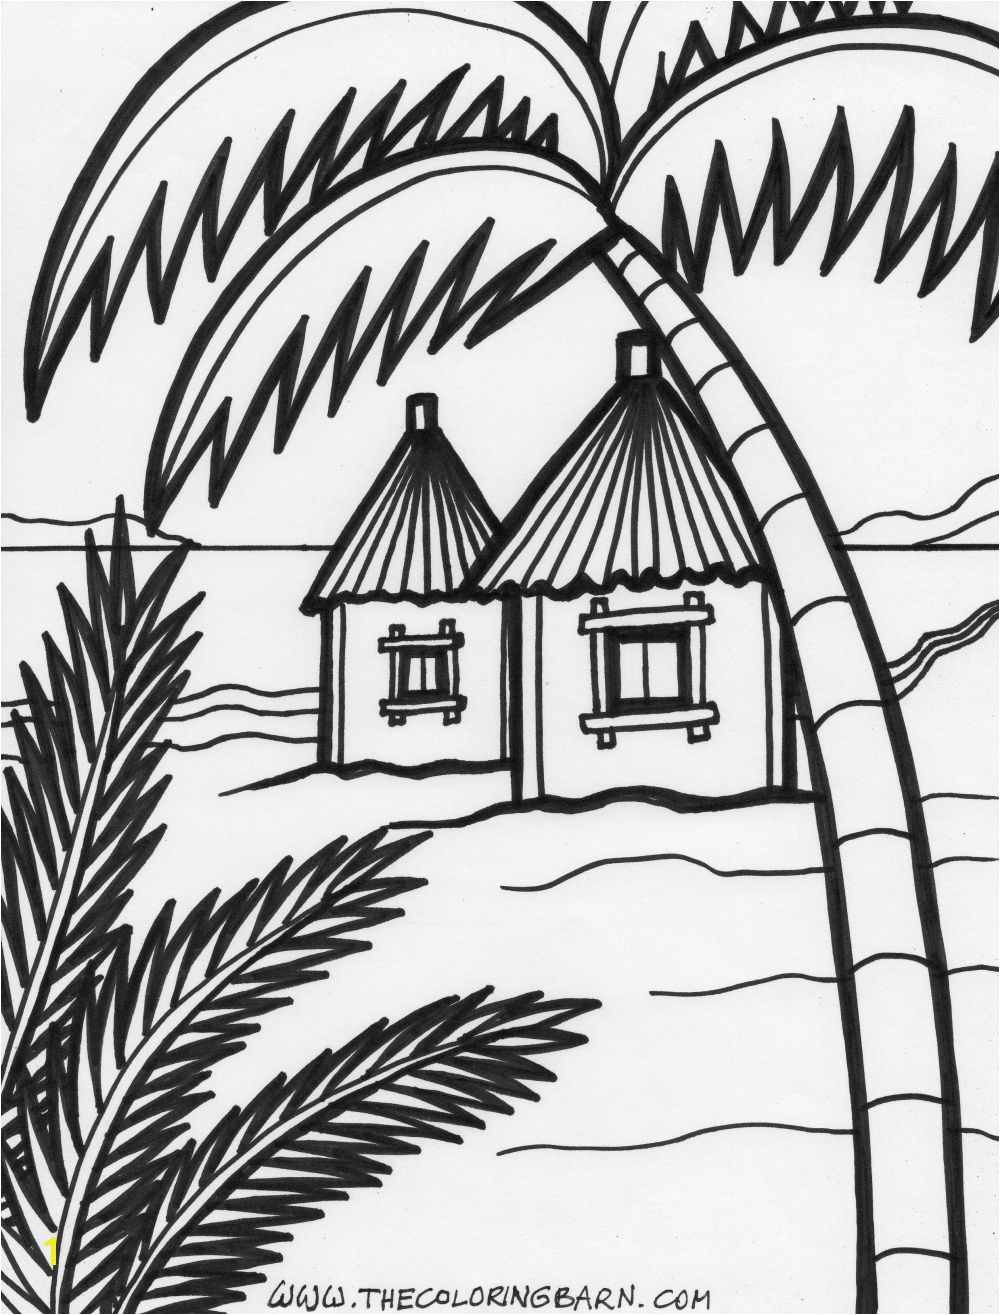 Beach House Colors Beach House Decor Beach Houses House Colouring Pages Summer